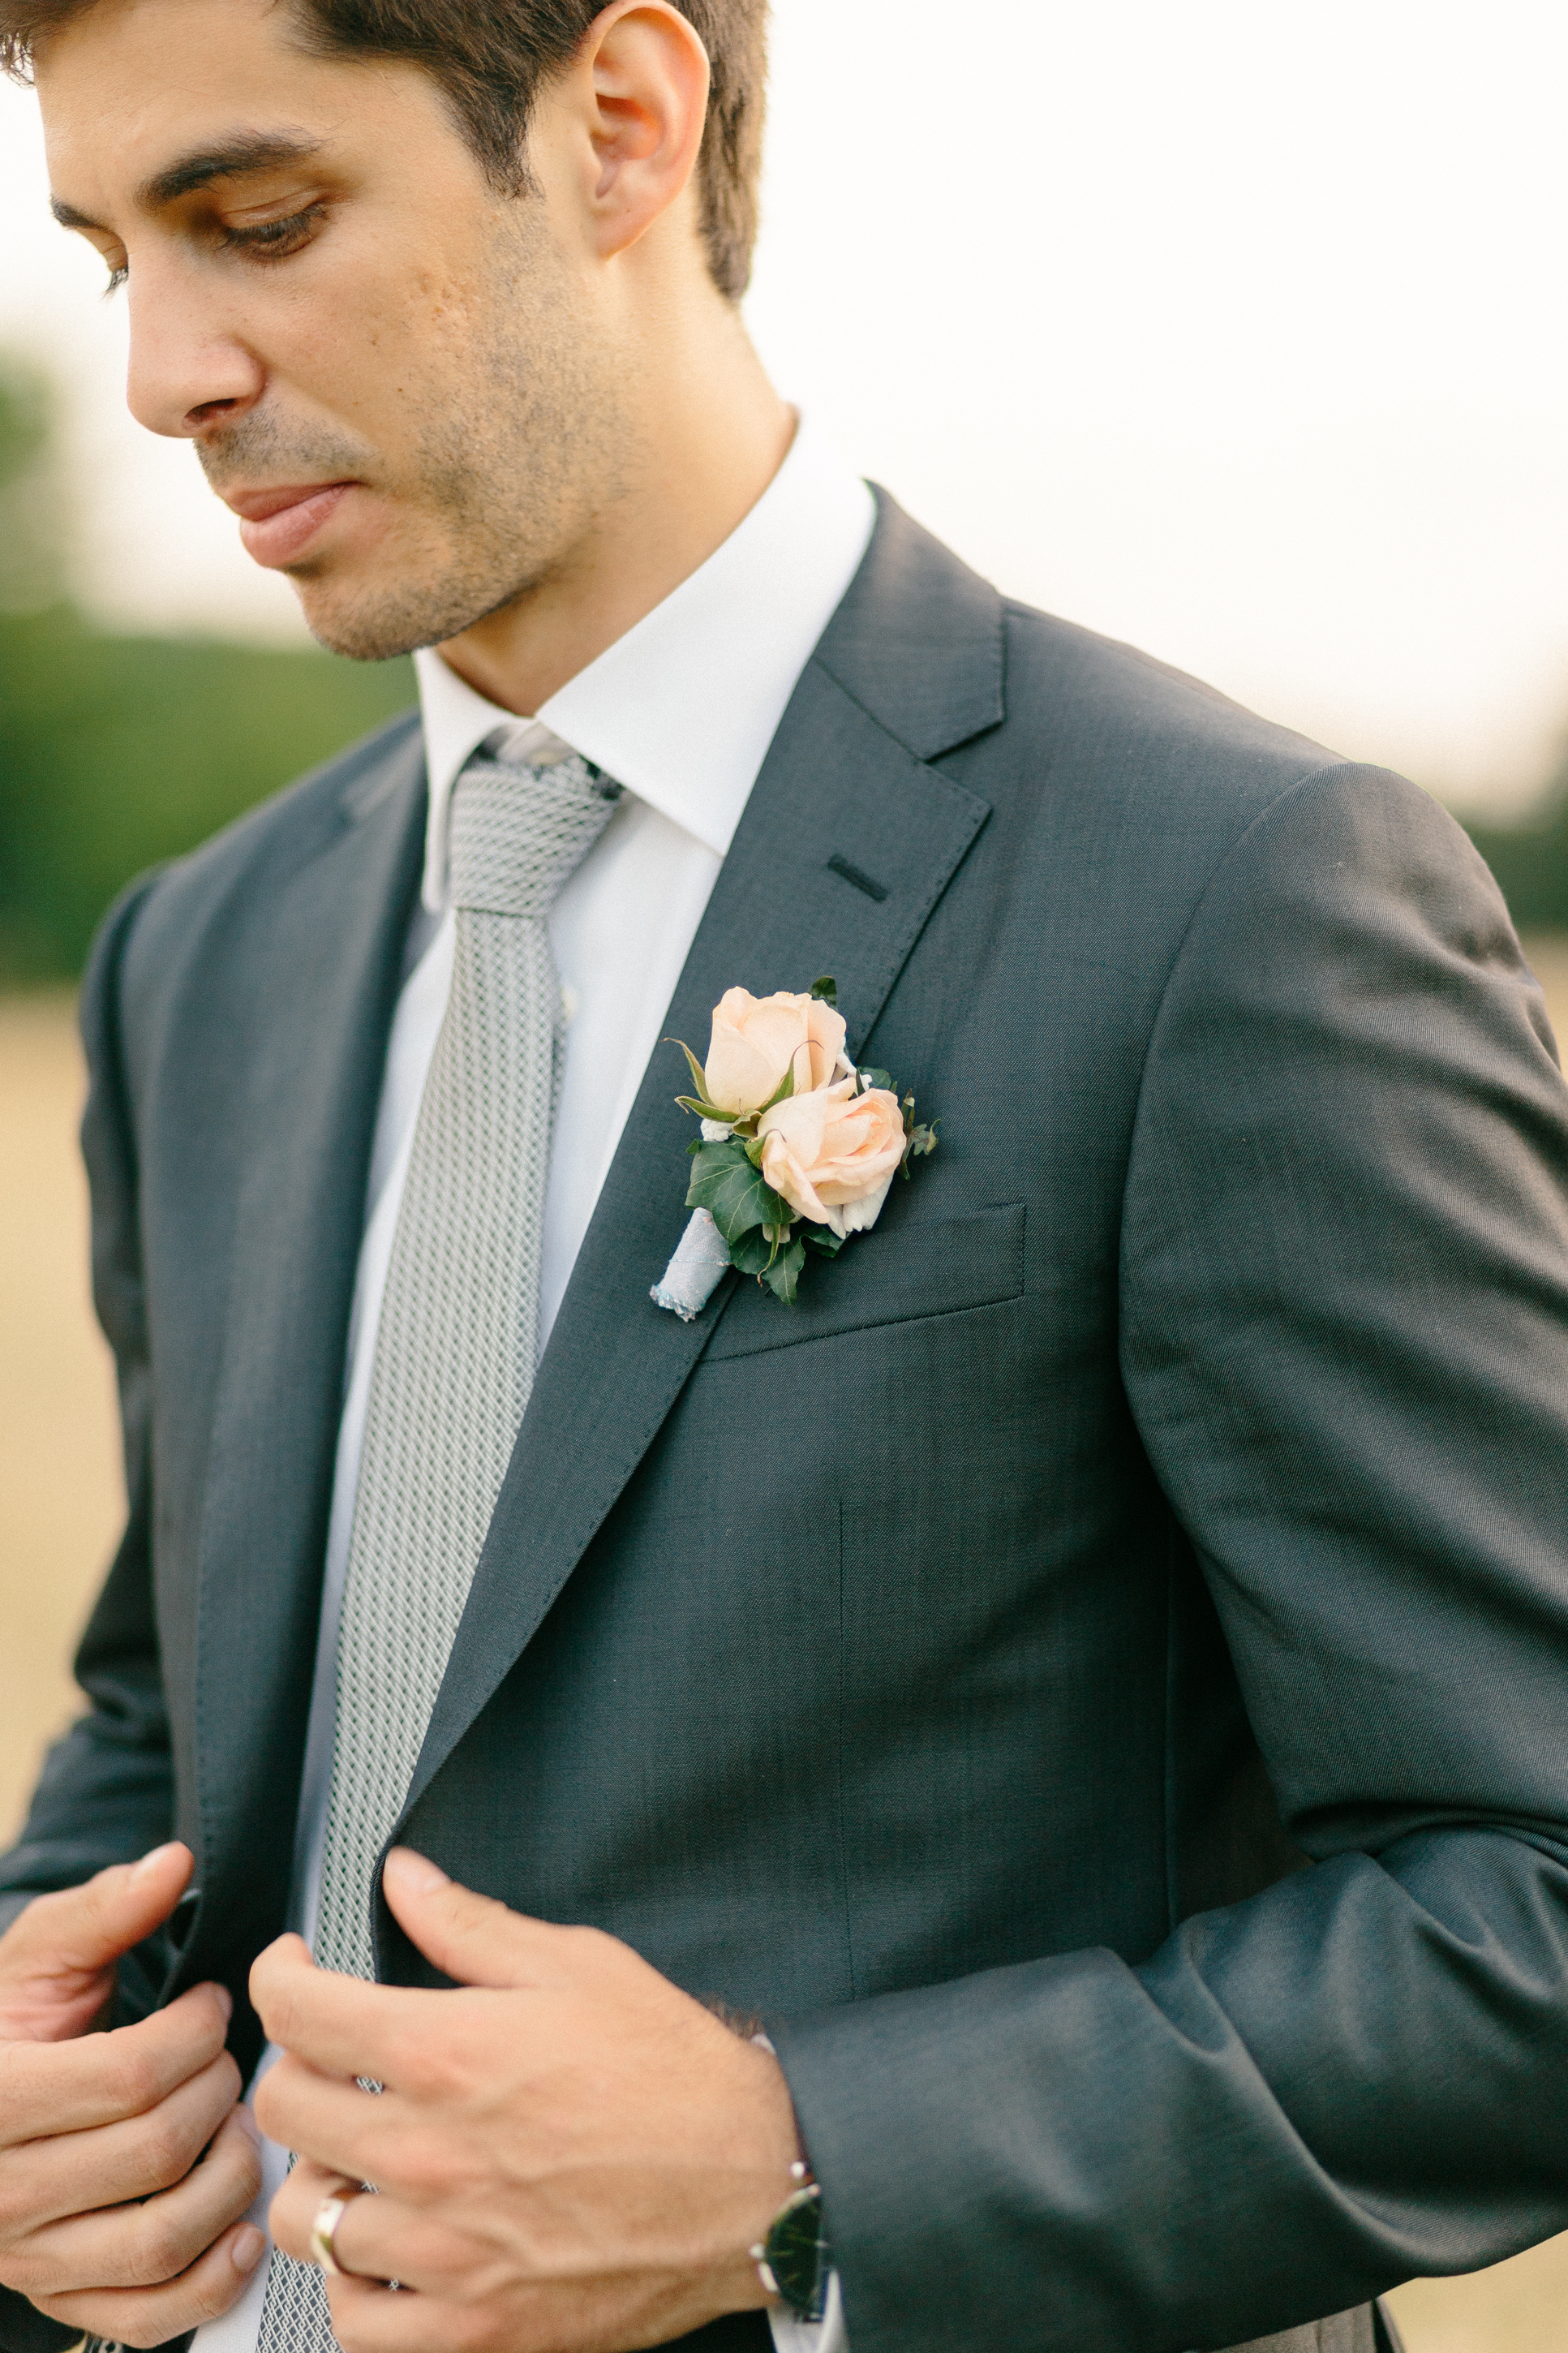 coral-boutonniere-ideas-wedding-day-groom